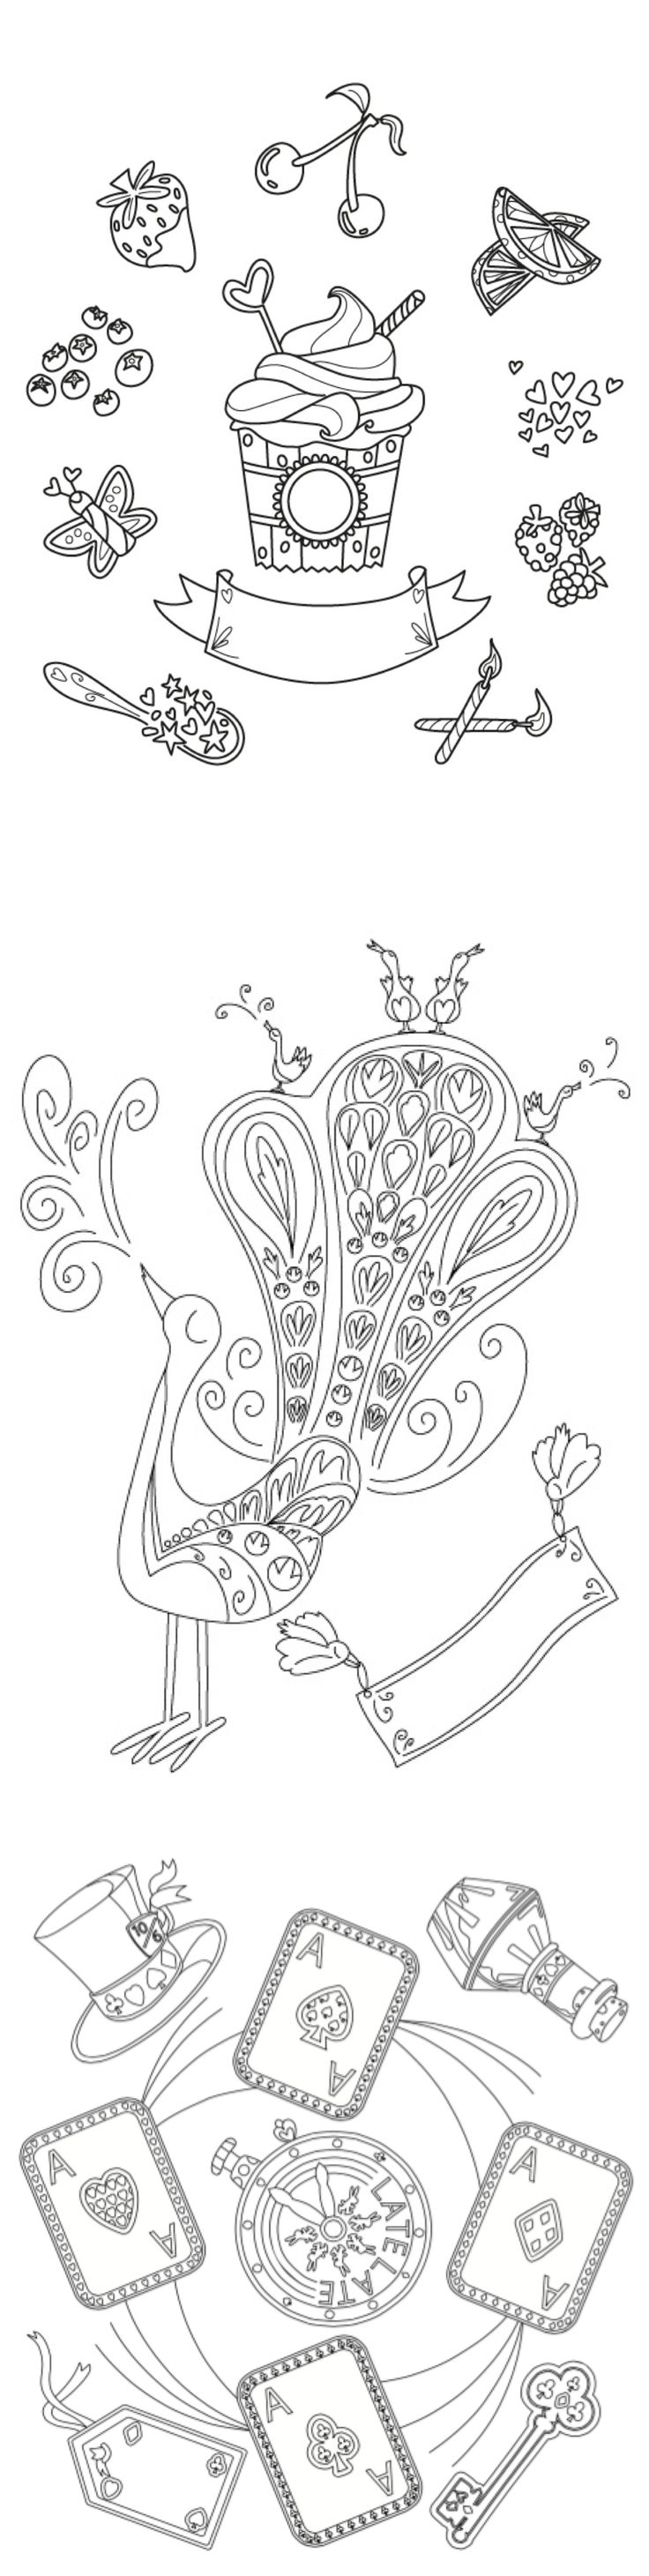 55 best free coloring pages images on pinterest book clubs